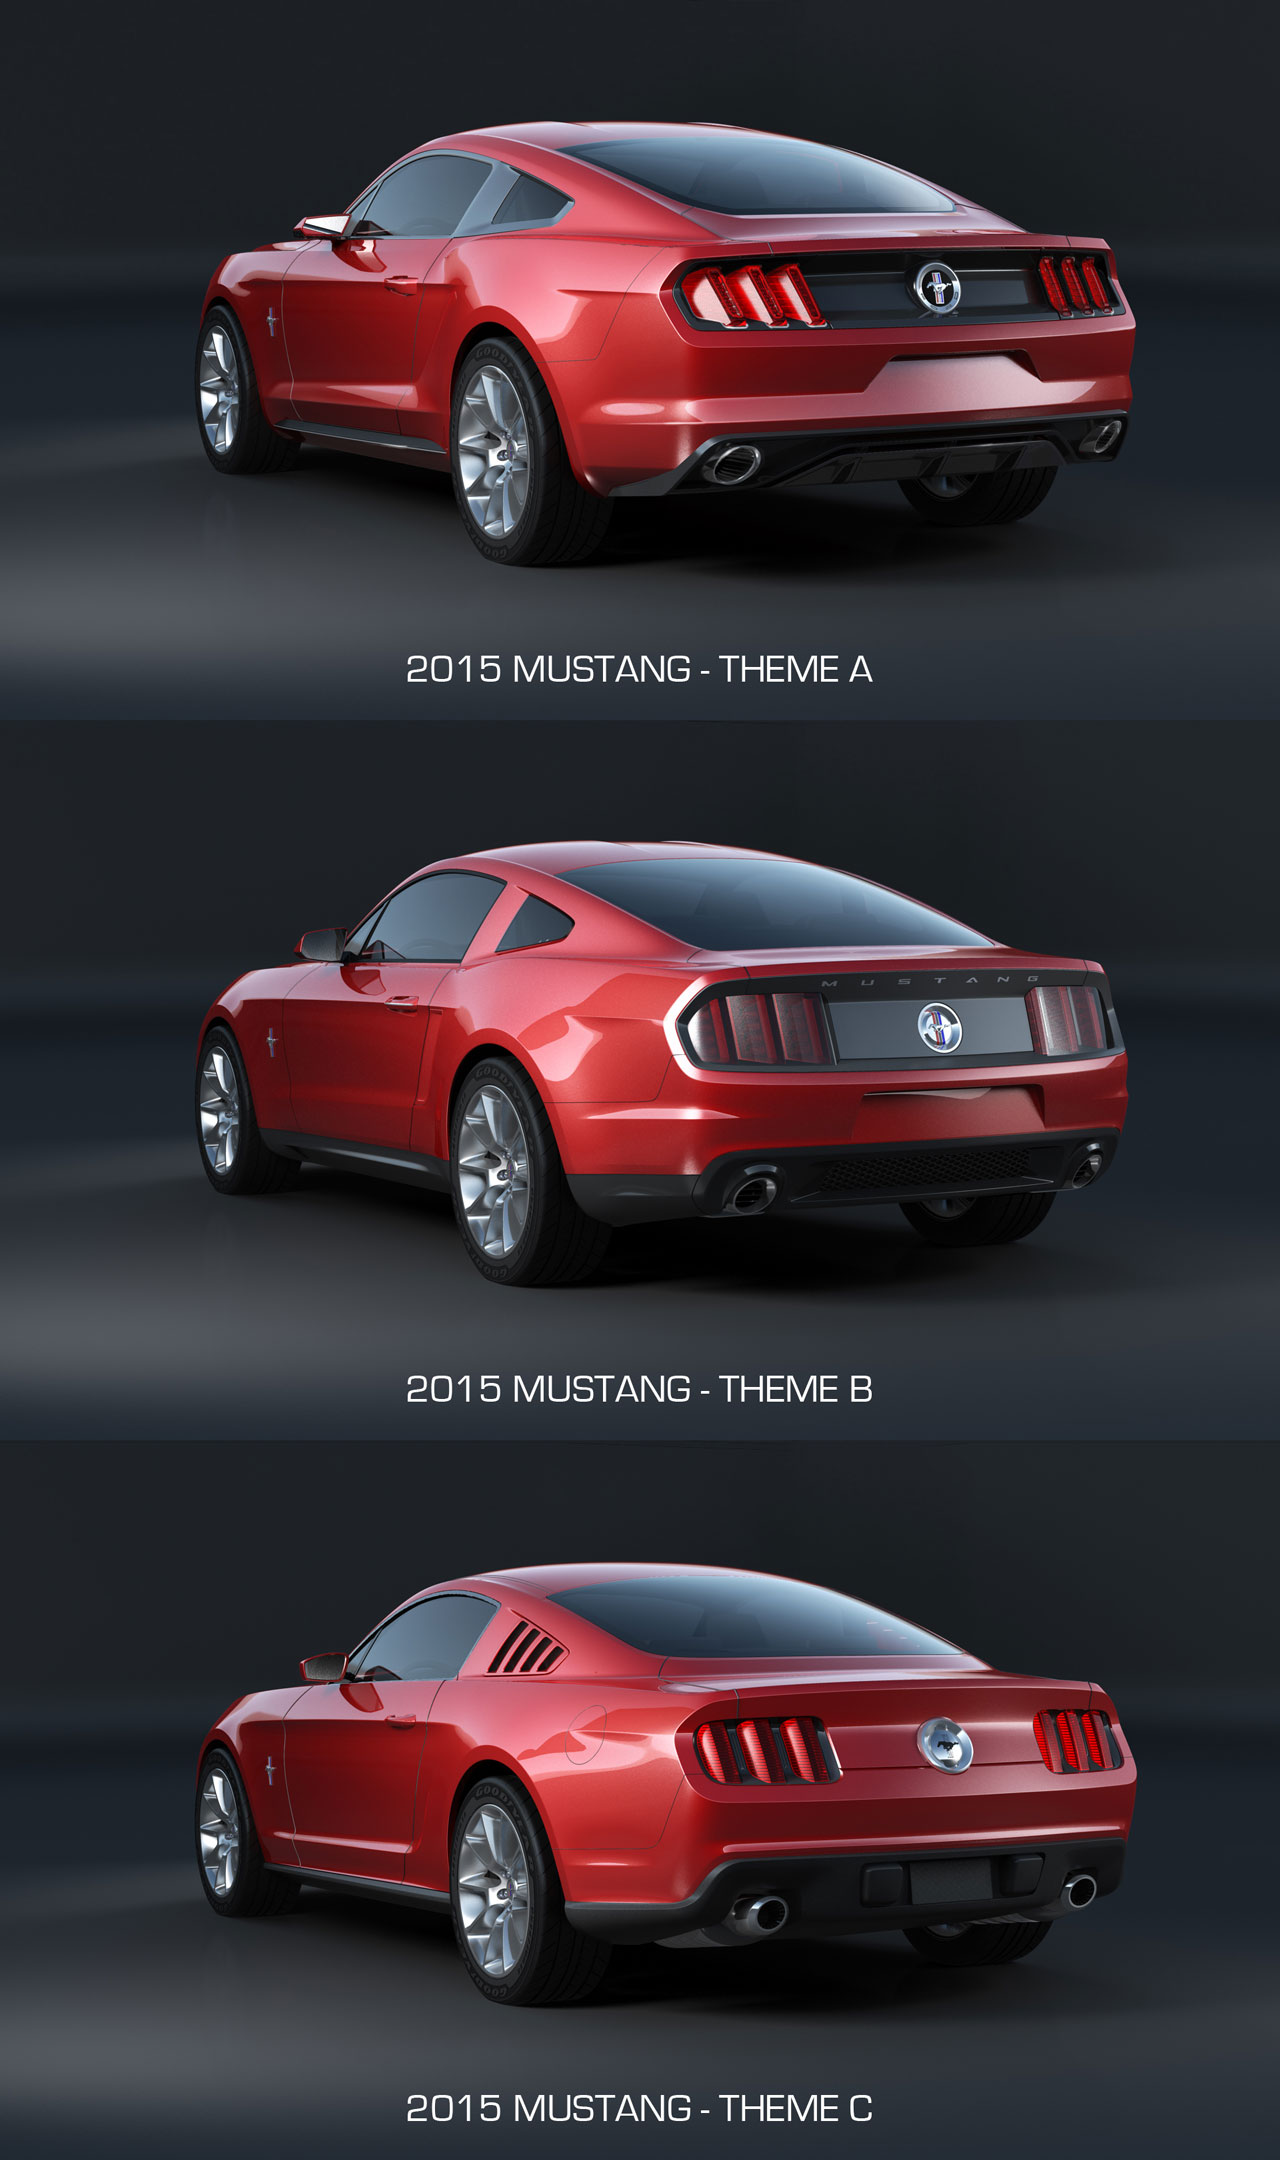 2015 ford mustang design theme comparison rear end